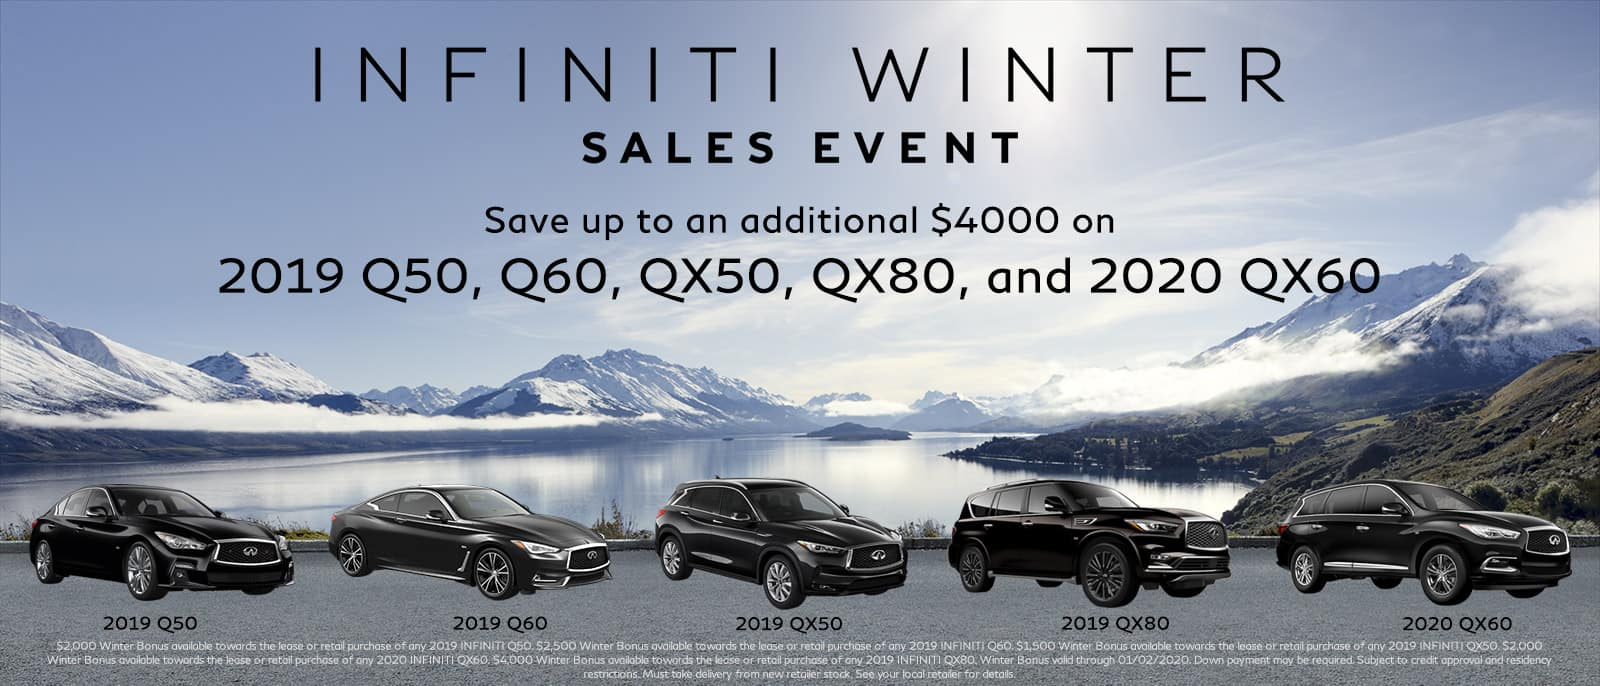 Winter Sales Event on Now